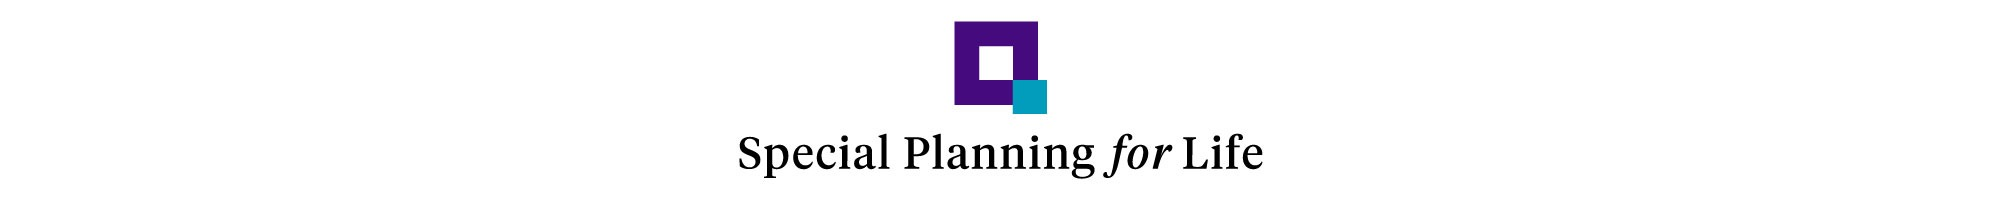 Special Planning For Life Logo